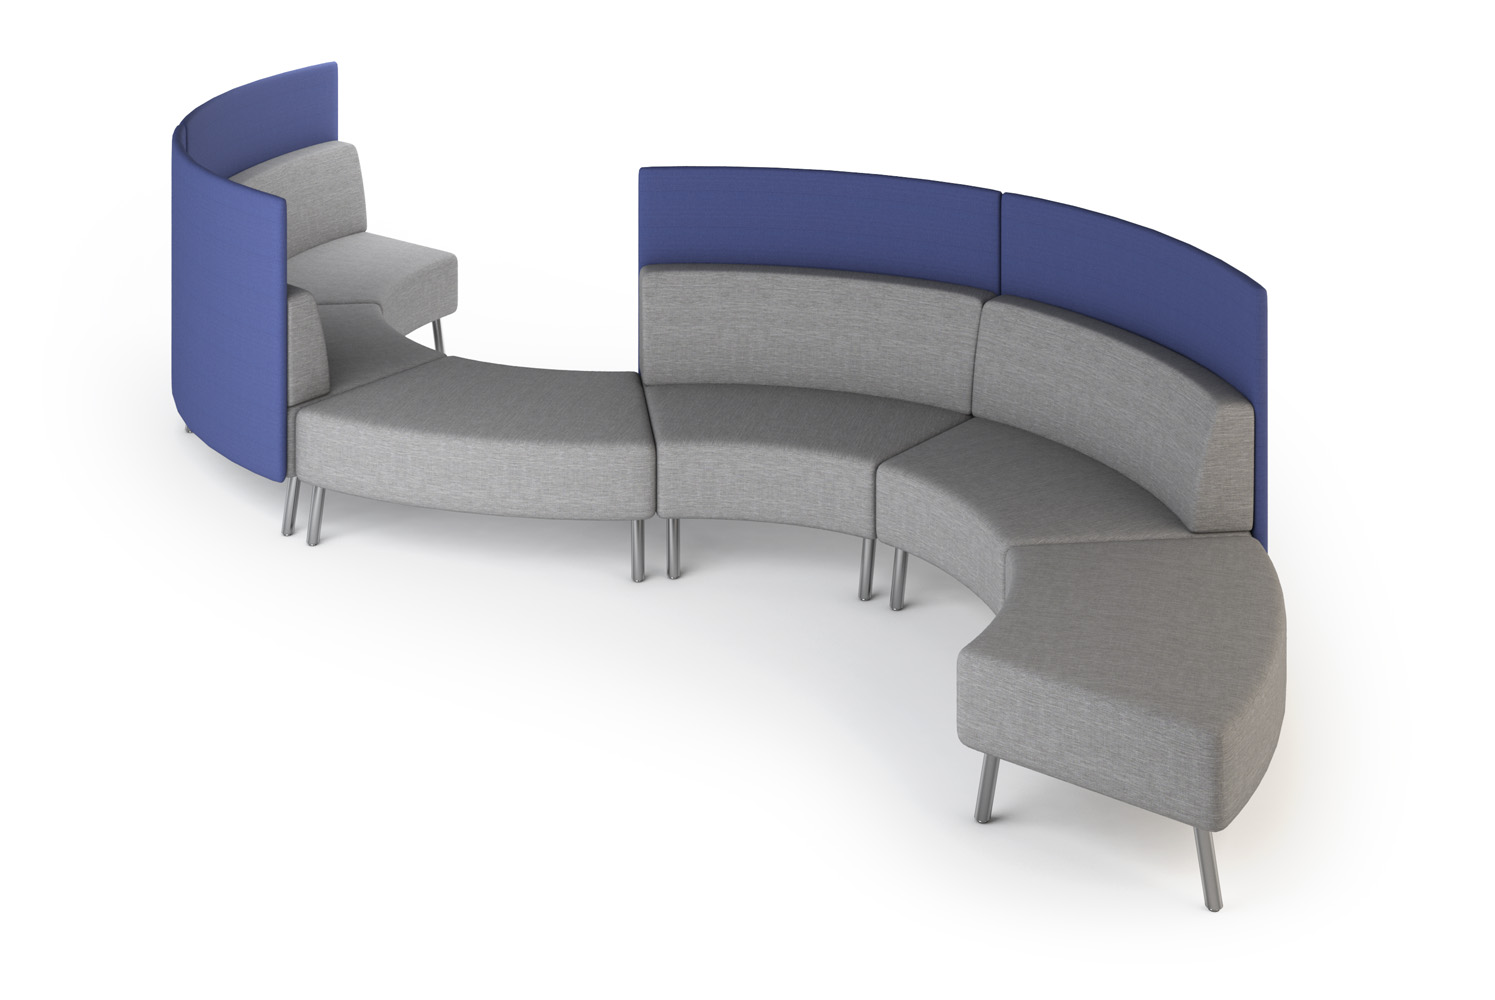 Laguna, Modular, Curved Configuration, Pollows